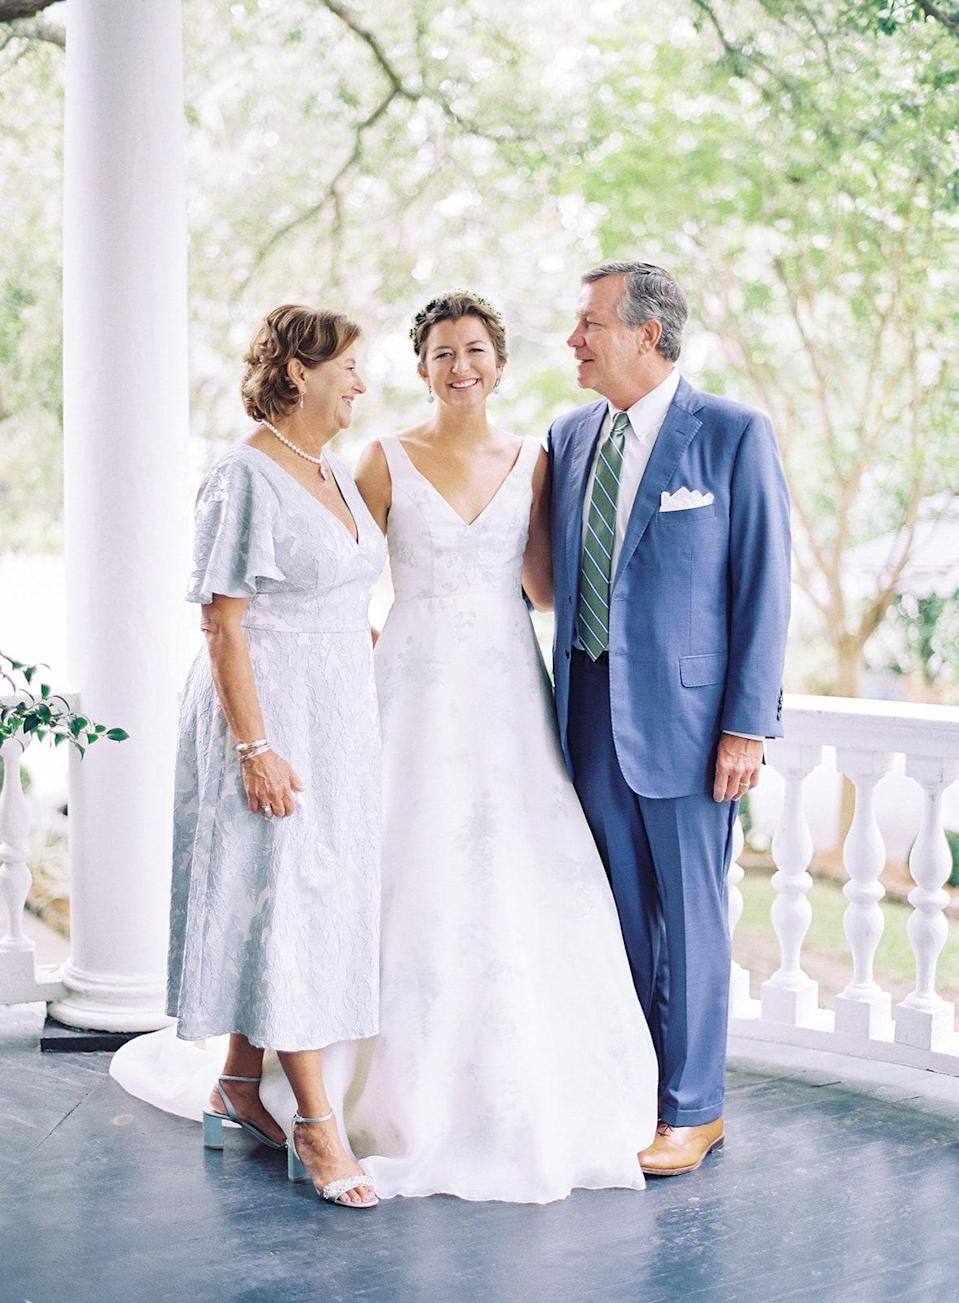 My parents, David and Mariana. My mom and I have the exact same name. It can be very confusing, so my dad started calling me Miniature Mariana, and it kinda stuck. That's why I go by Mini!